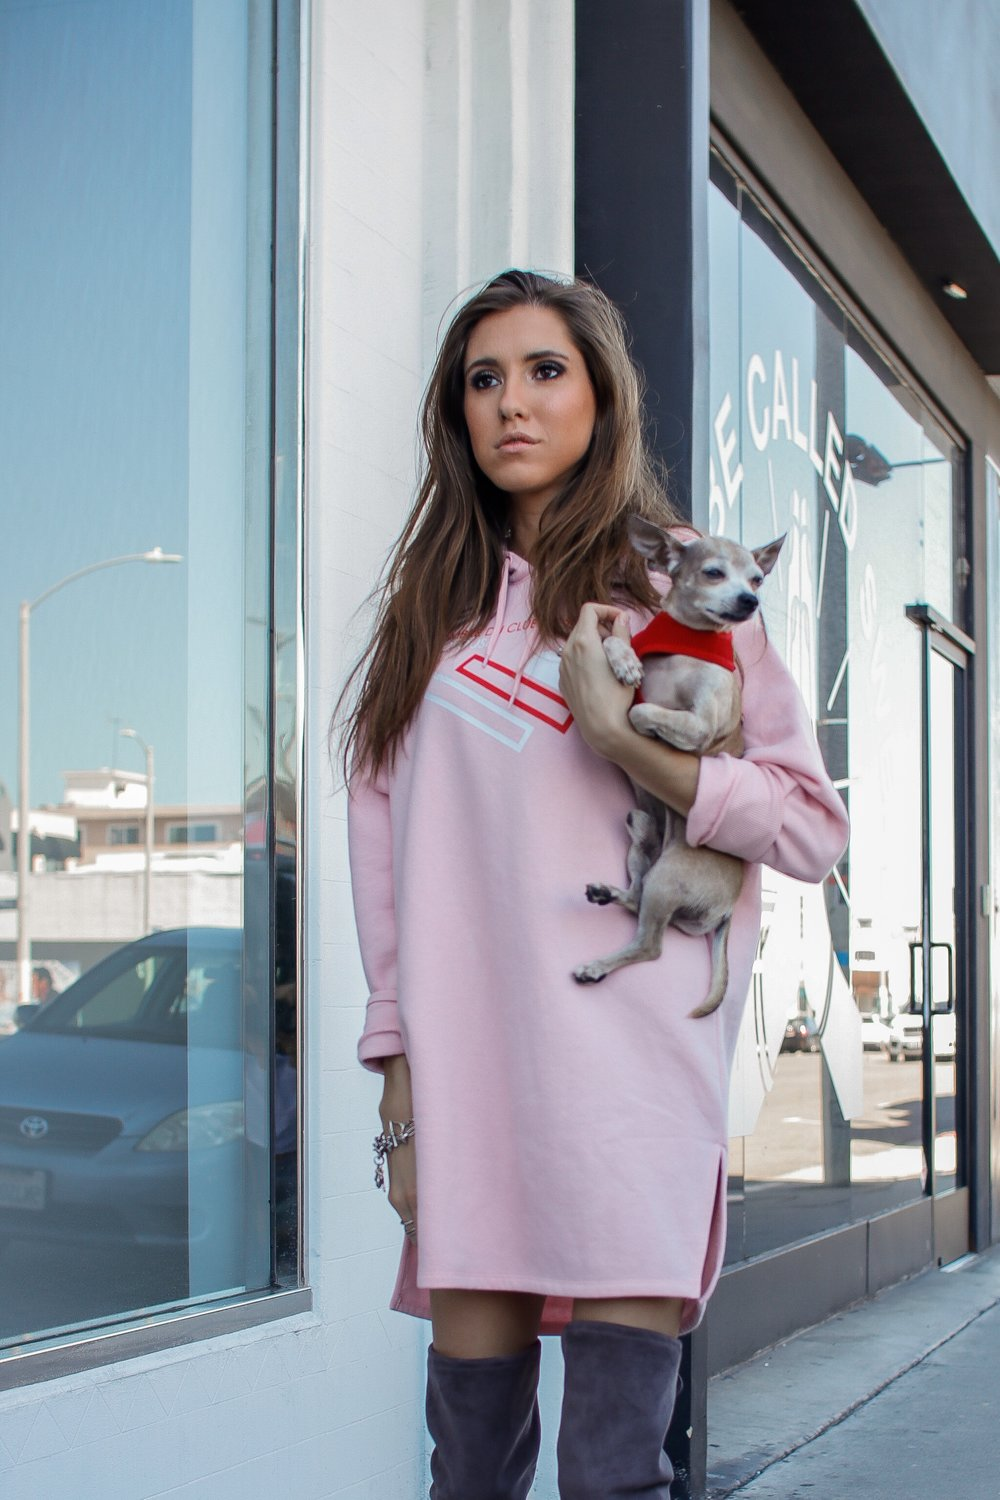 The+Hungarian+Brunette+Pink+sweater+dress+and+OTK+boots+%288+of+11%29.jpg